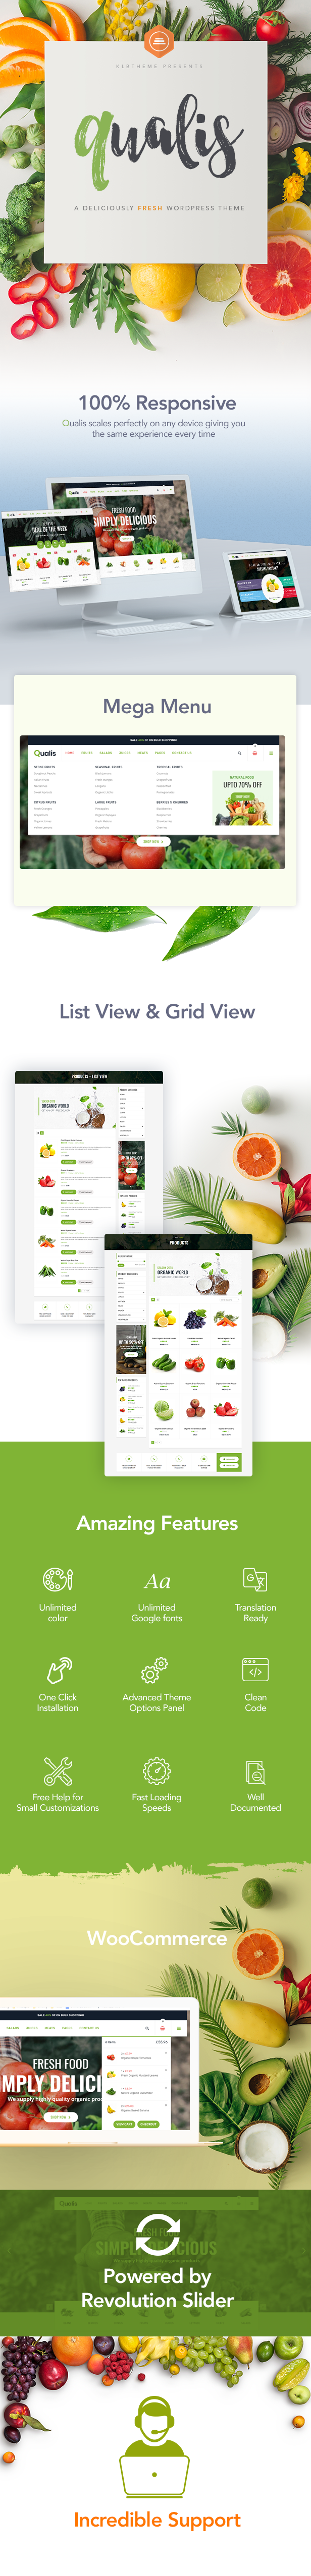 Qualis - Organic Food Responsive eCommerce WordPress Theme - 3